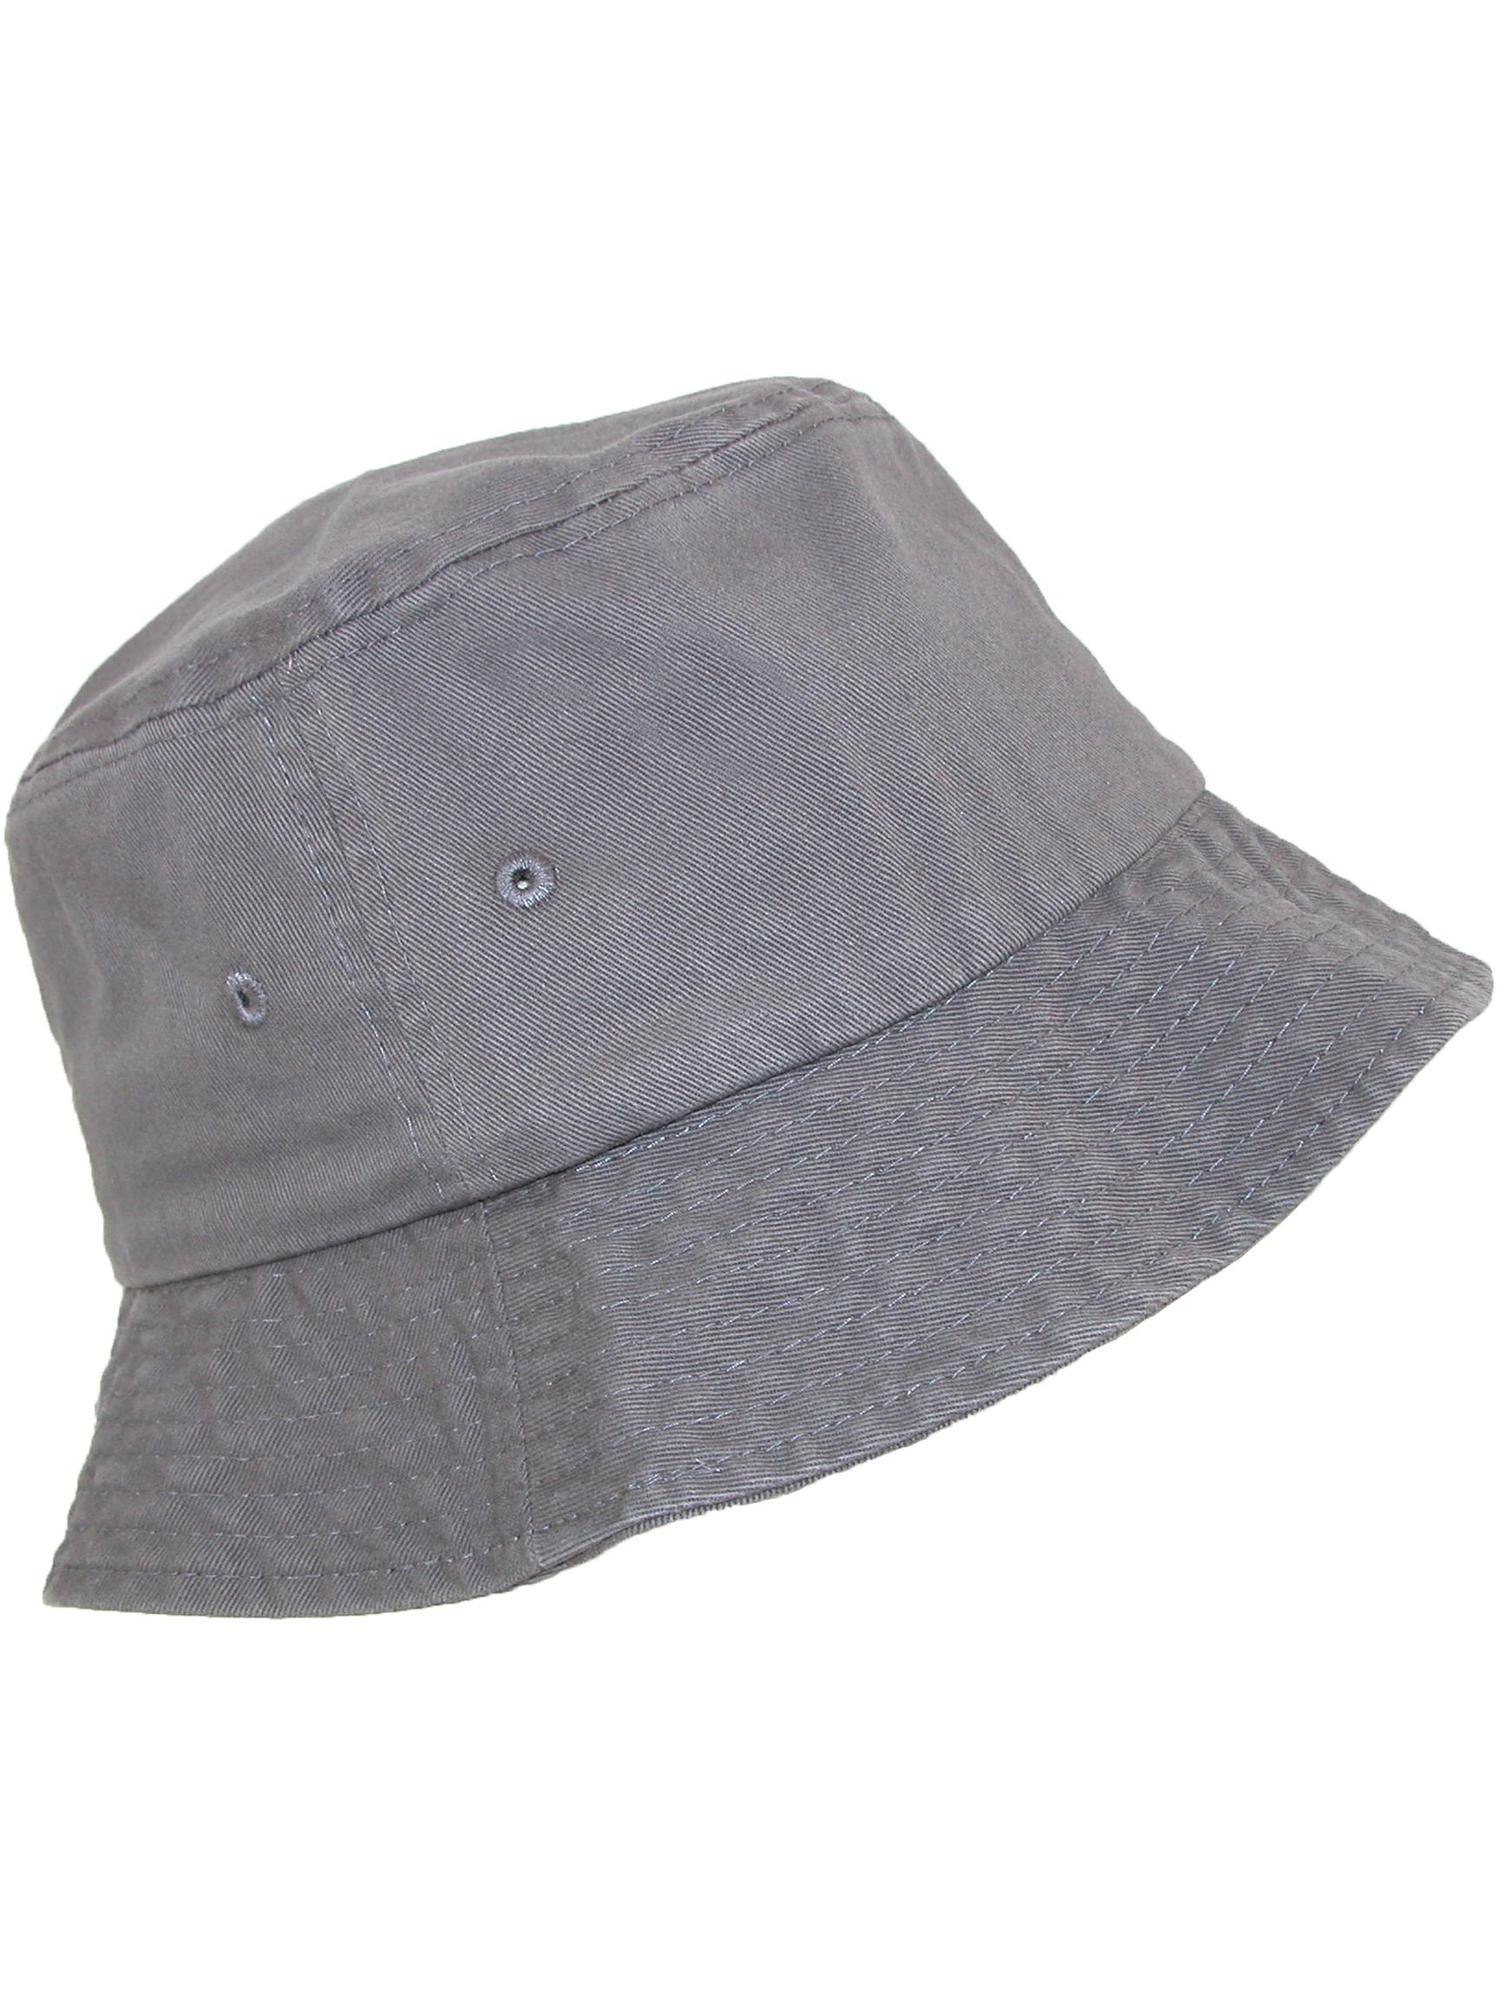 Hat Bucket Summer Cool Bucket Hat Bicycle Wheel Cycling Packable Fisherman Cap Hiking Rain Picnic Hat for Toddler Fisherman